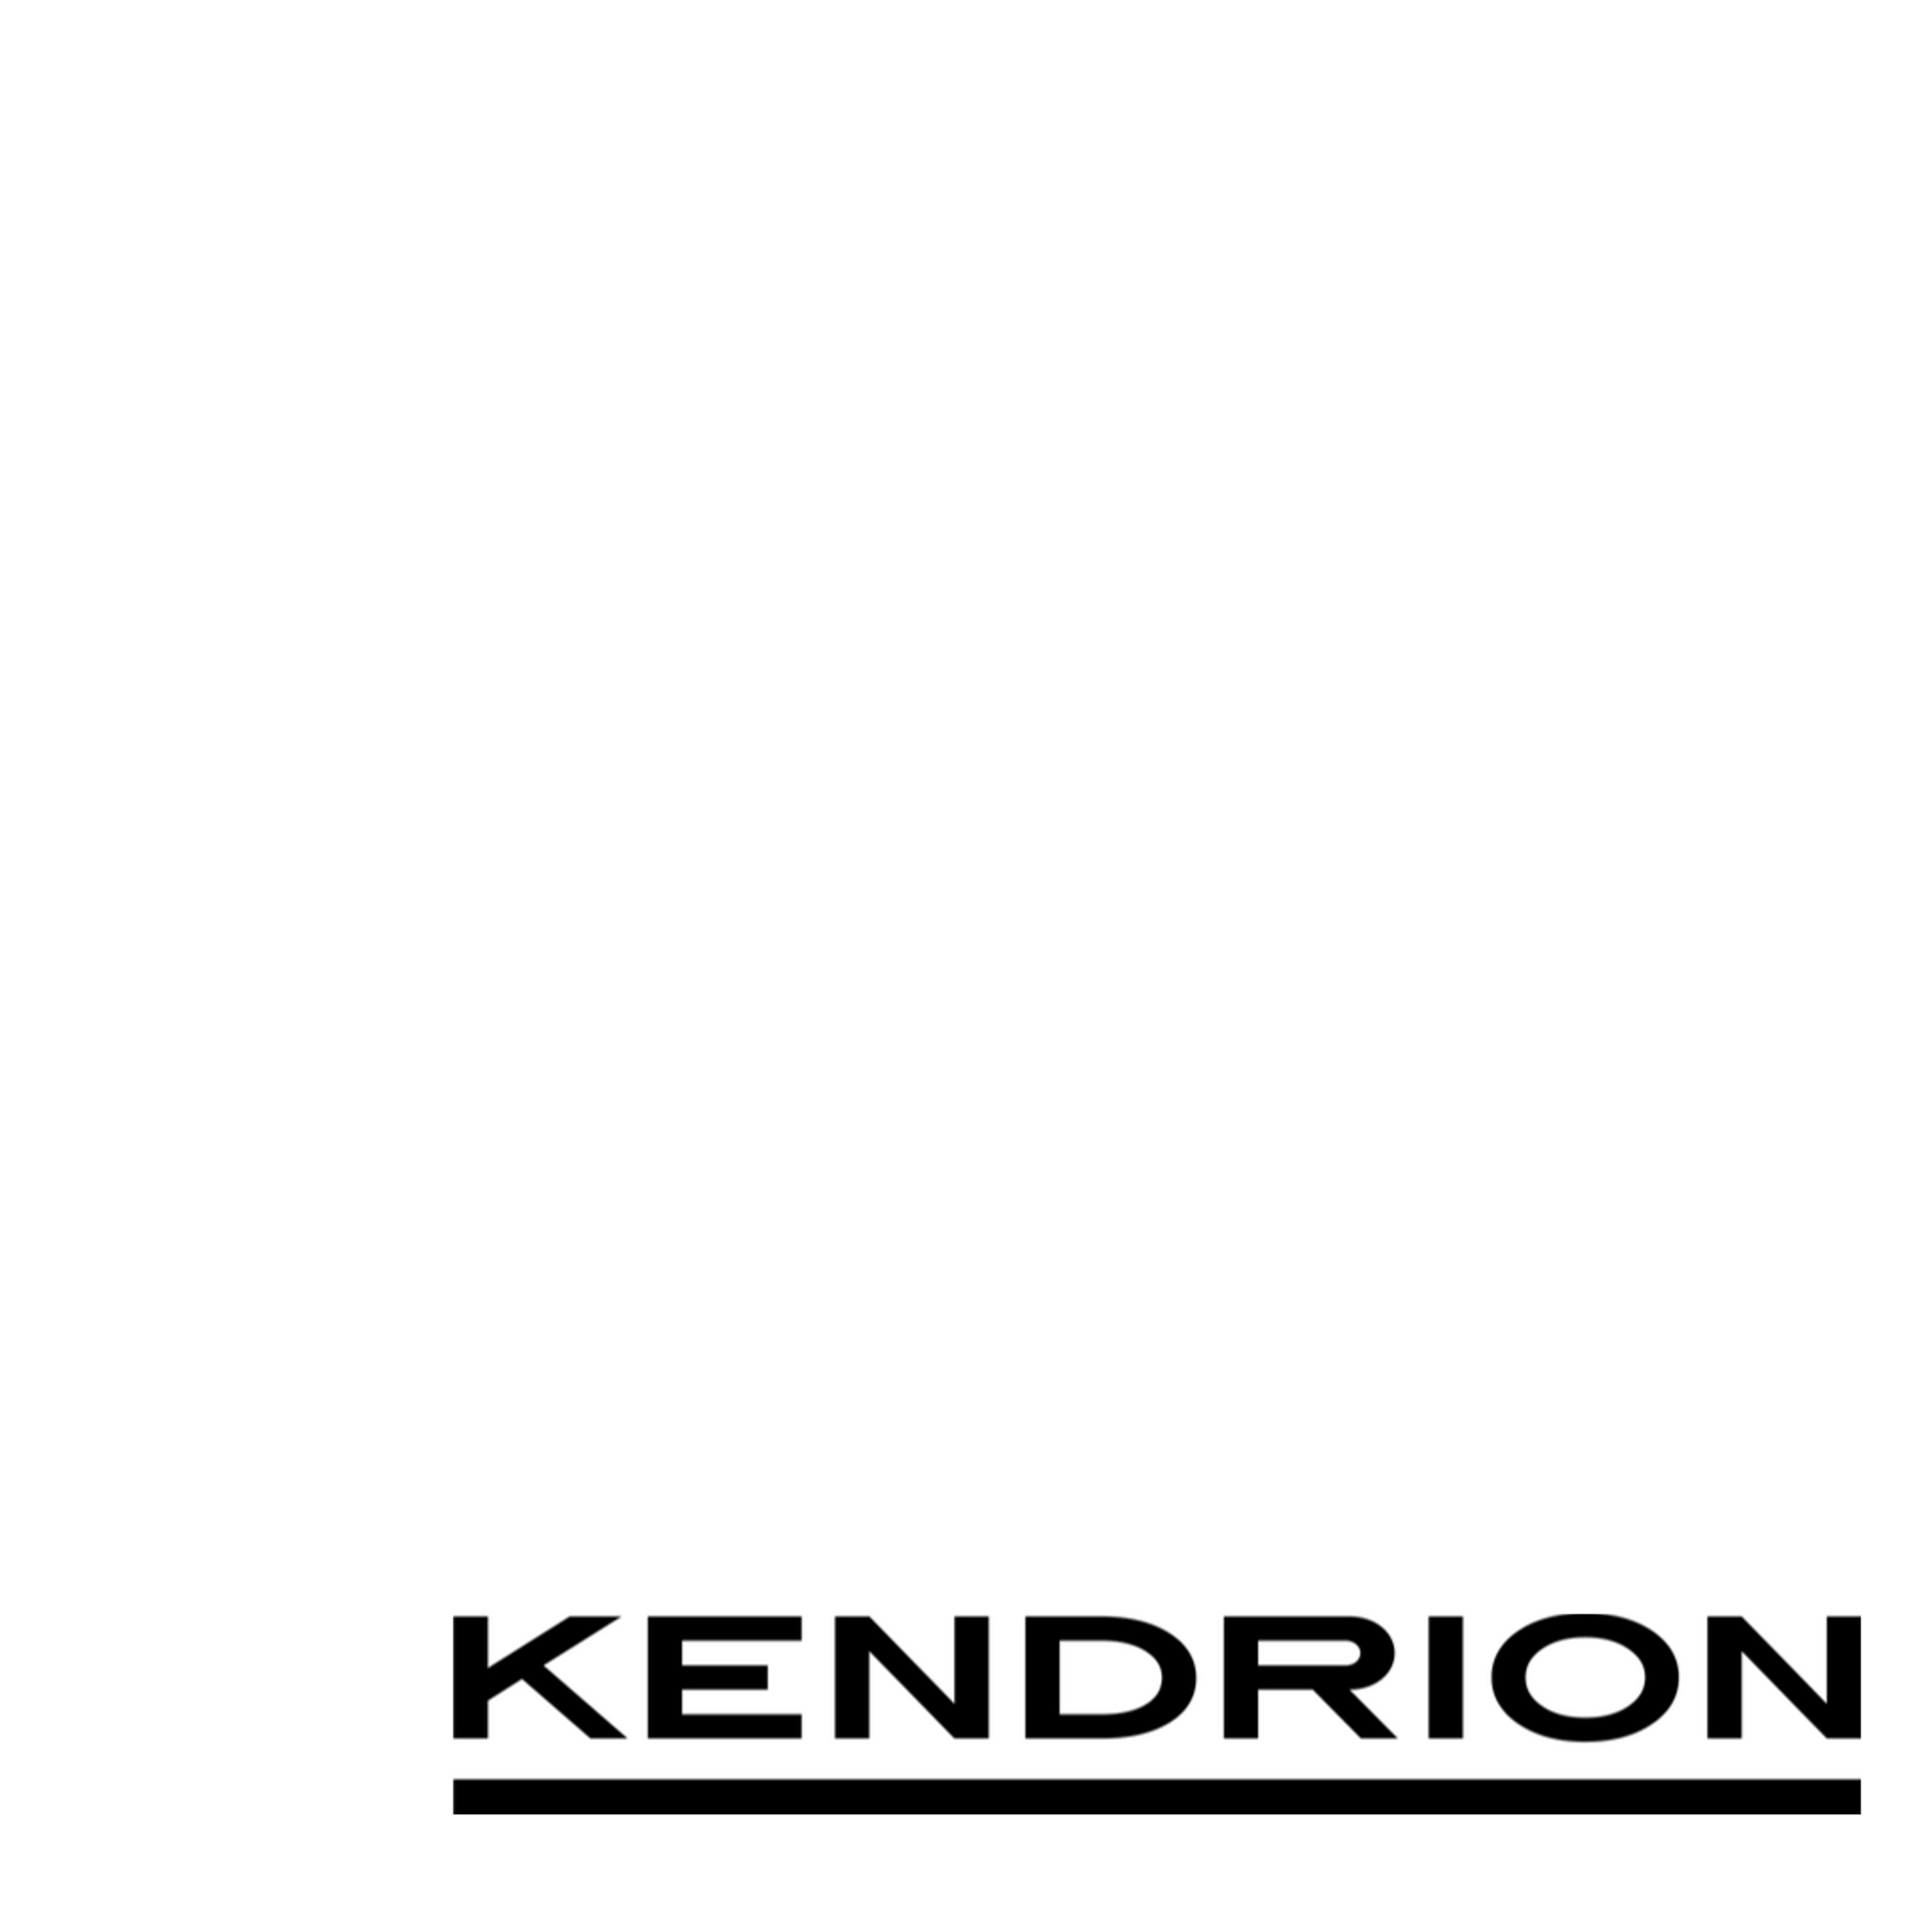 Kendrion